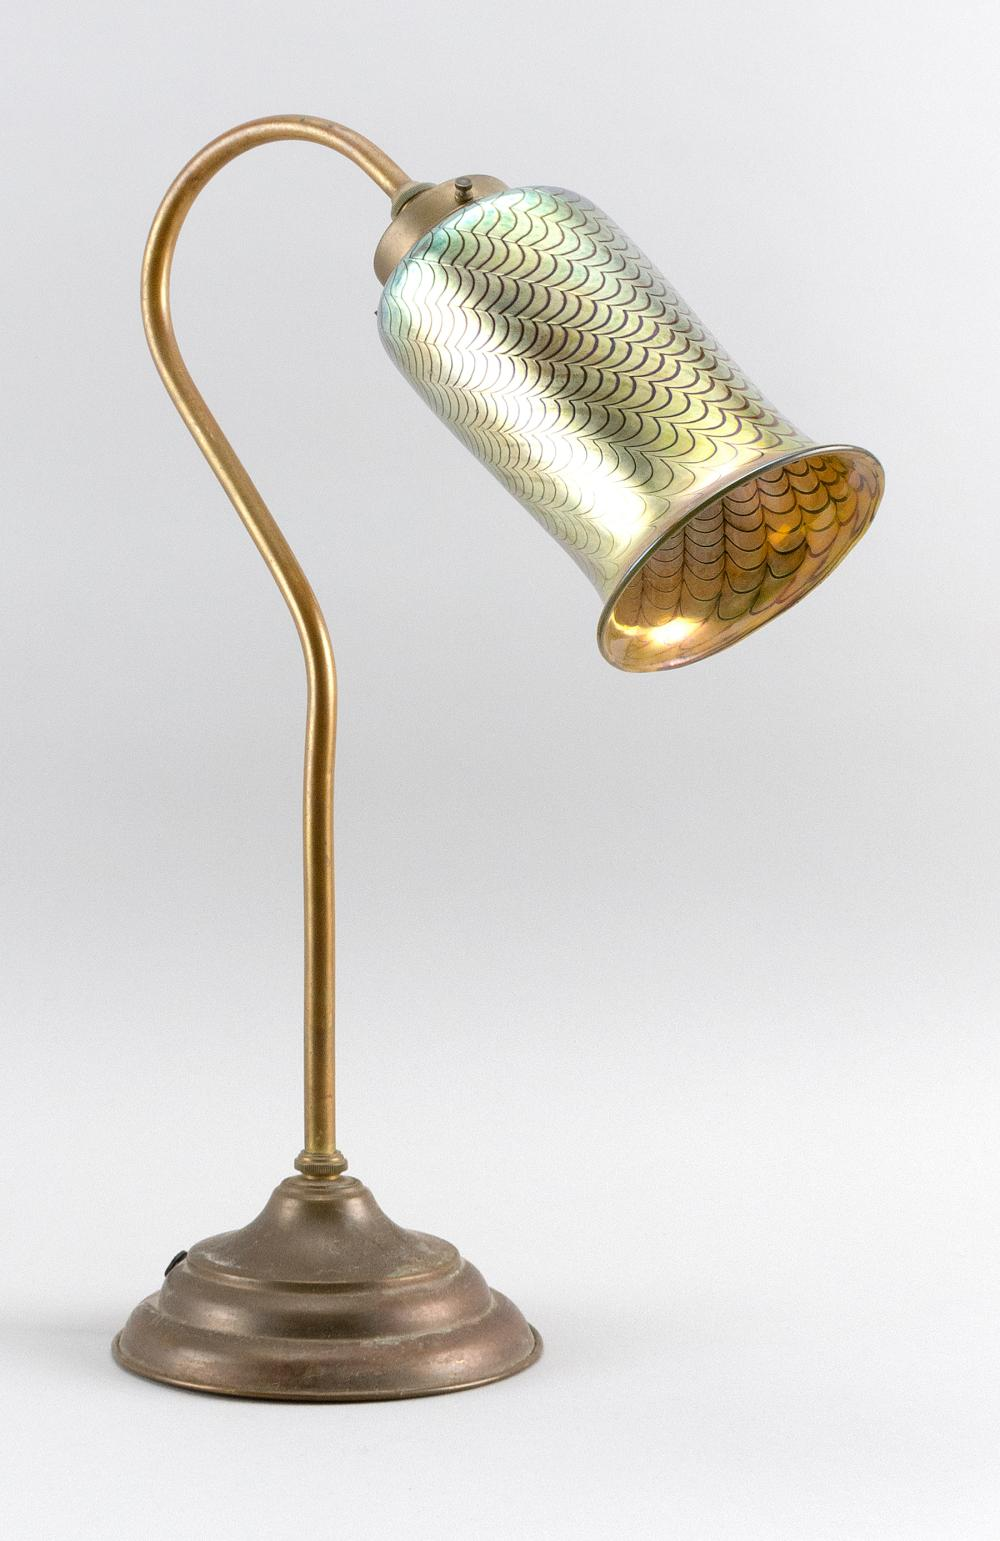 "ART GLASS AND BRASS TASK LAMP Metallic gold glass shade with pulled feather design. Simple brass base. Unmarked. Height 18.5""."